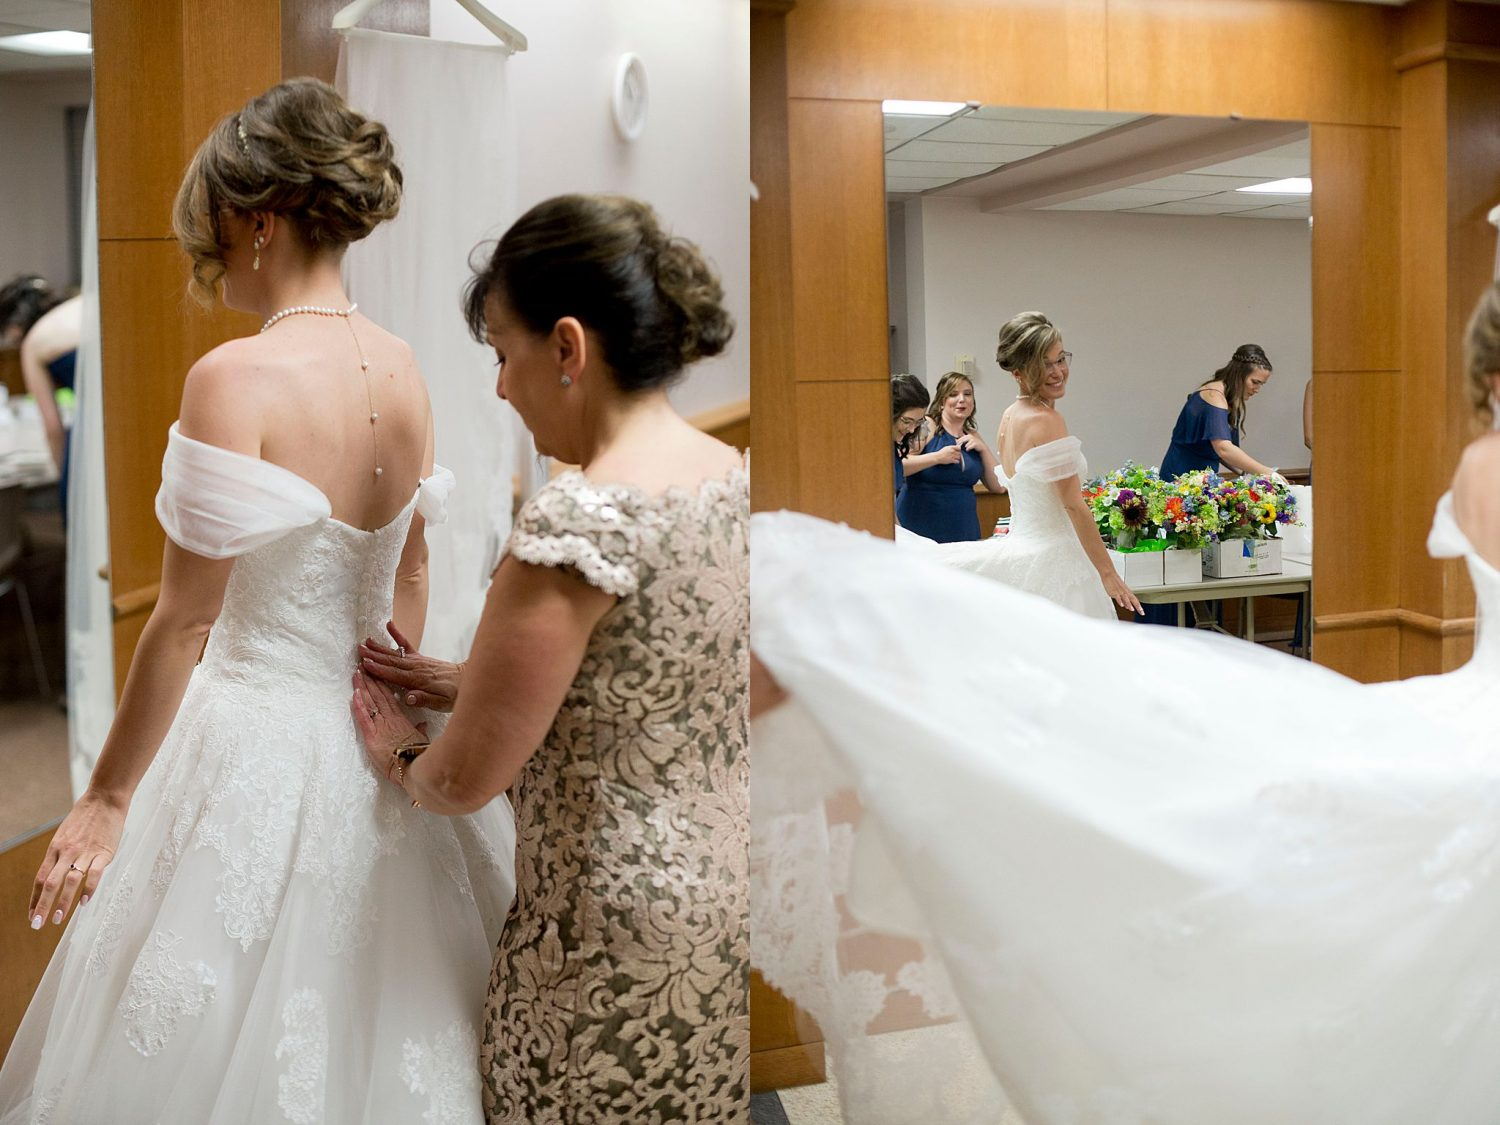 A mother helps the bride get into her wedding gown, the bride admires her reflection in the mirror.